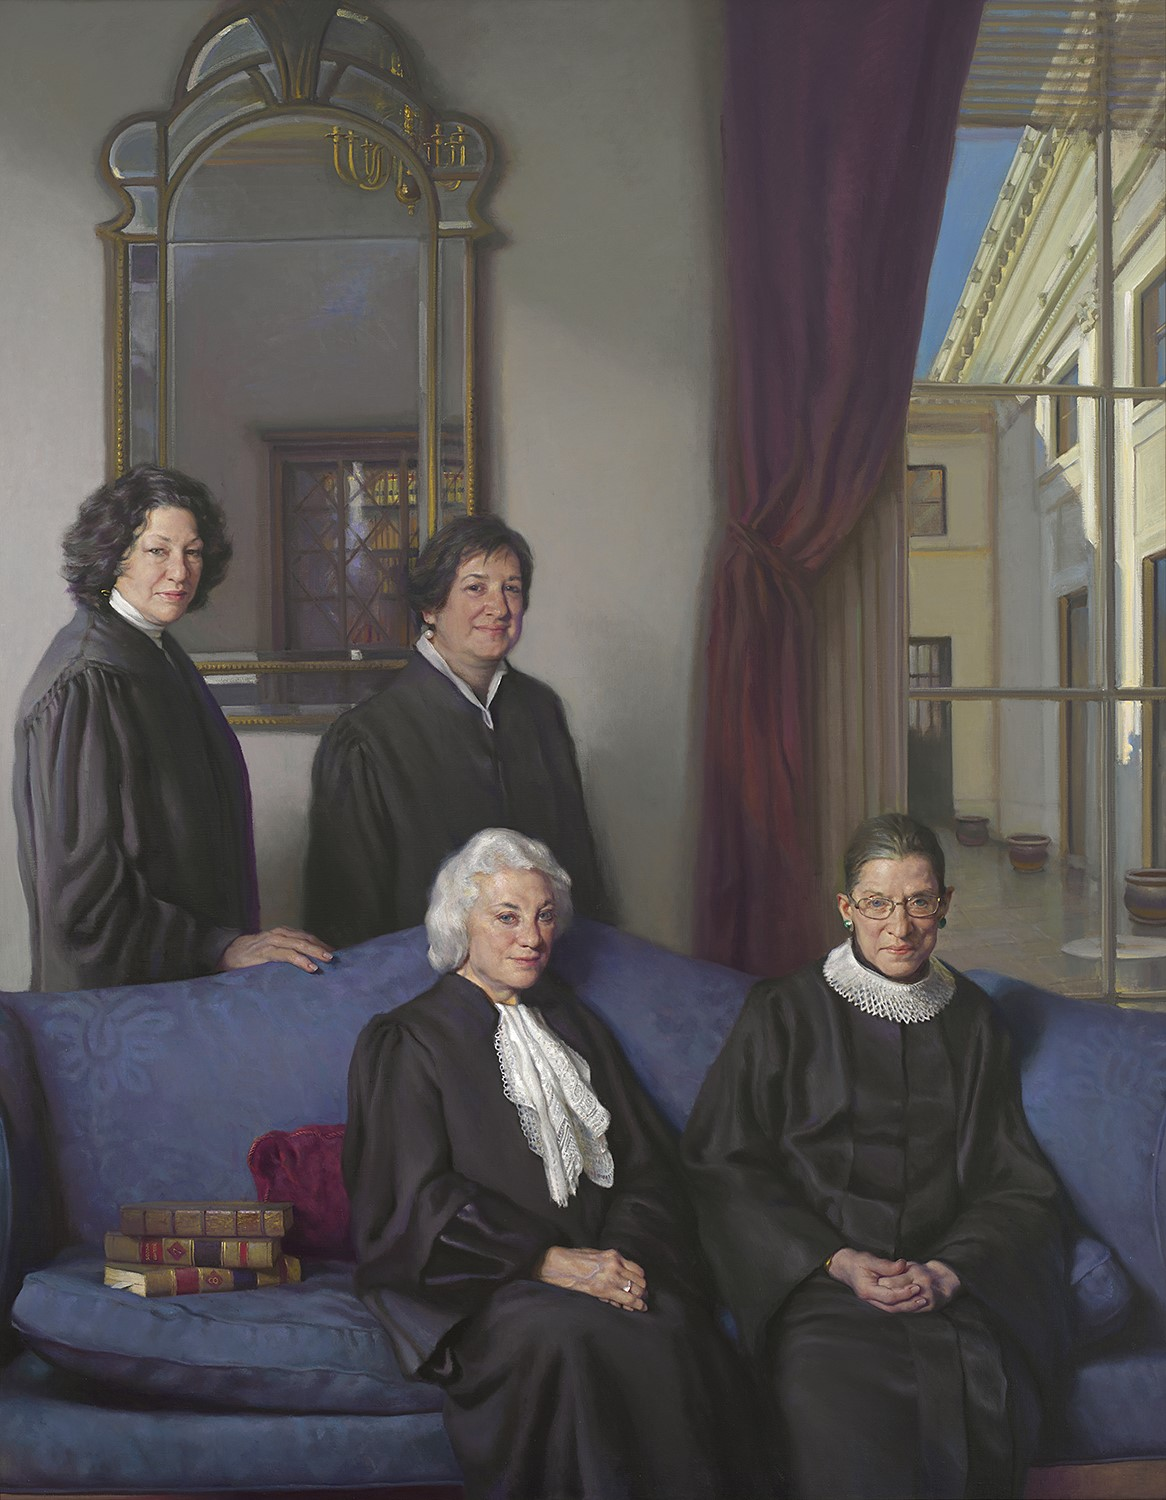 The Four Justices